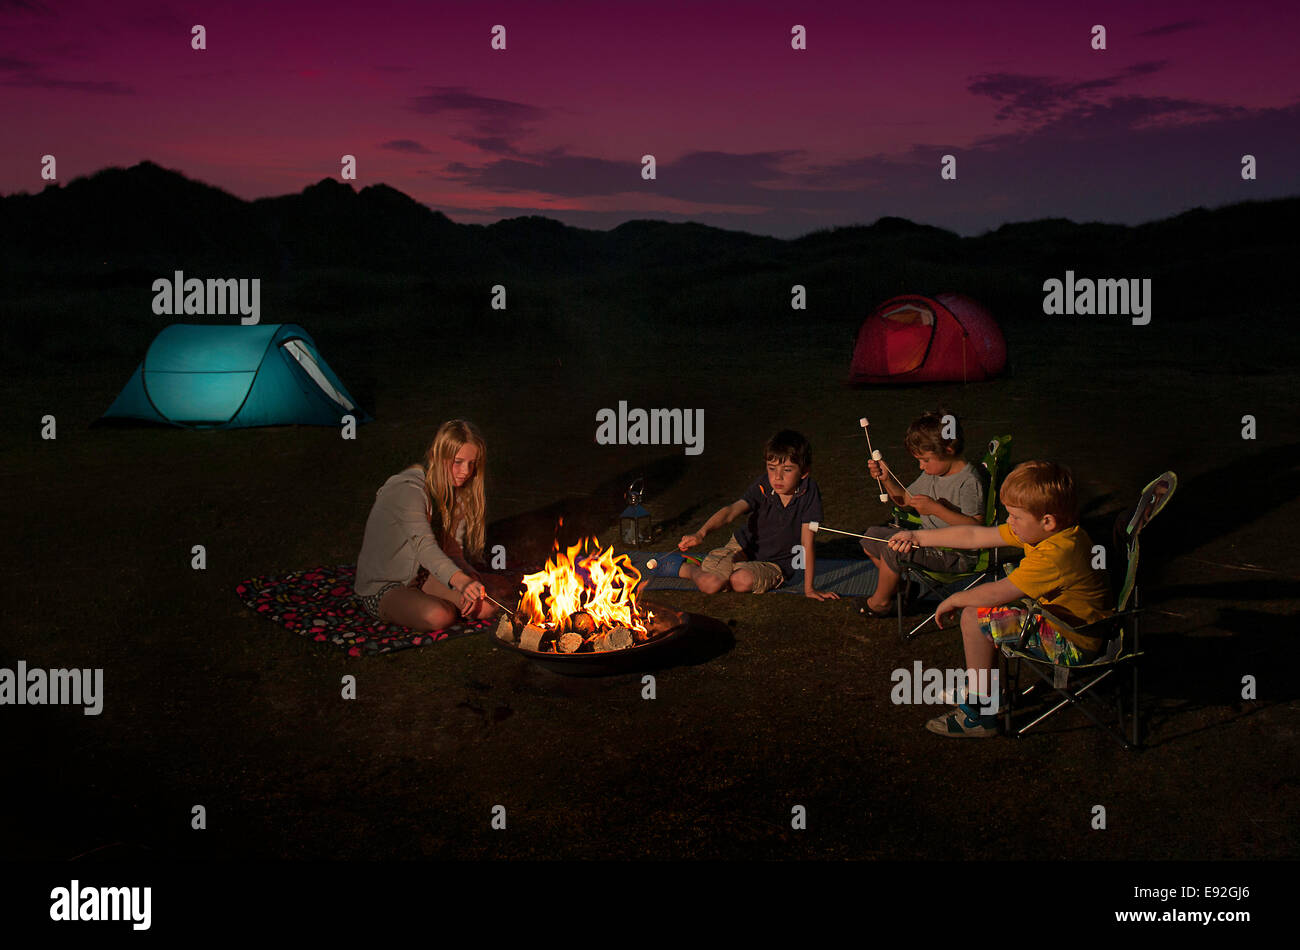 Children sitting around a campfire roasting marshmallows - Stock Image